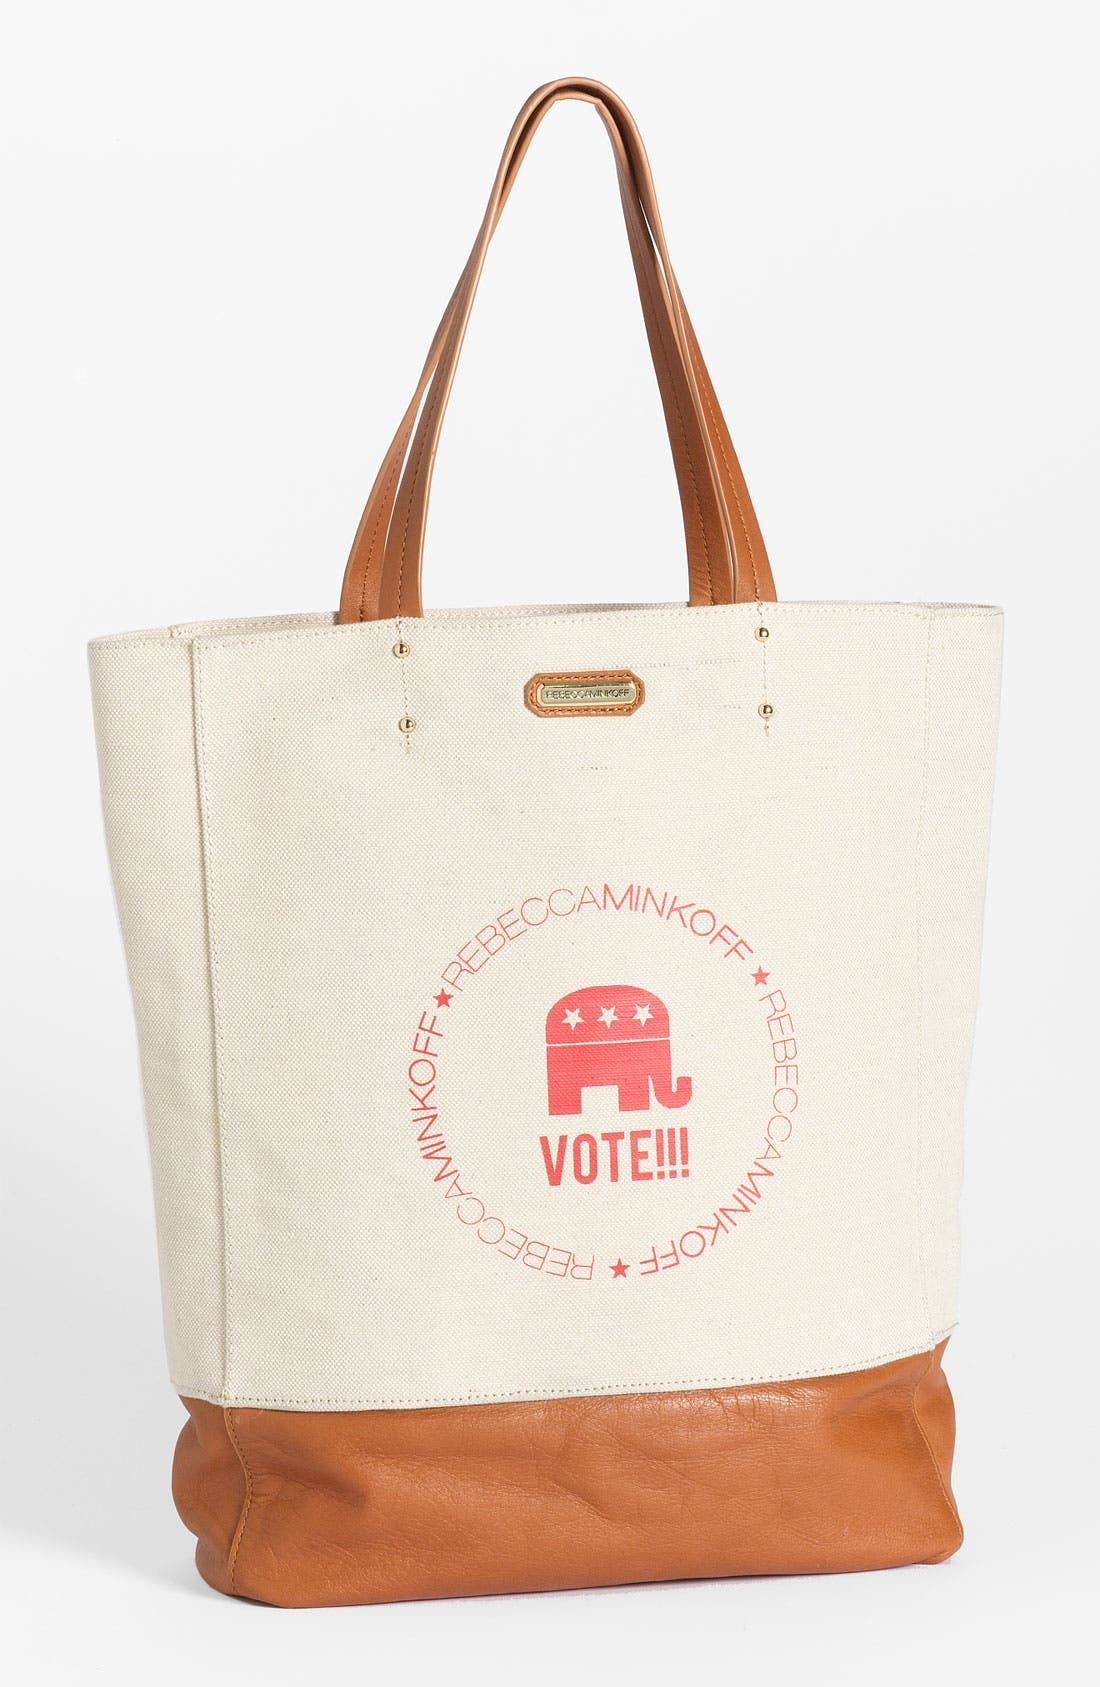 Alternate Image 1 Selected - Rebecca Minkoff 'Vote - Cherish' Tote